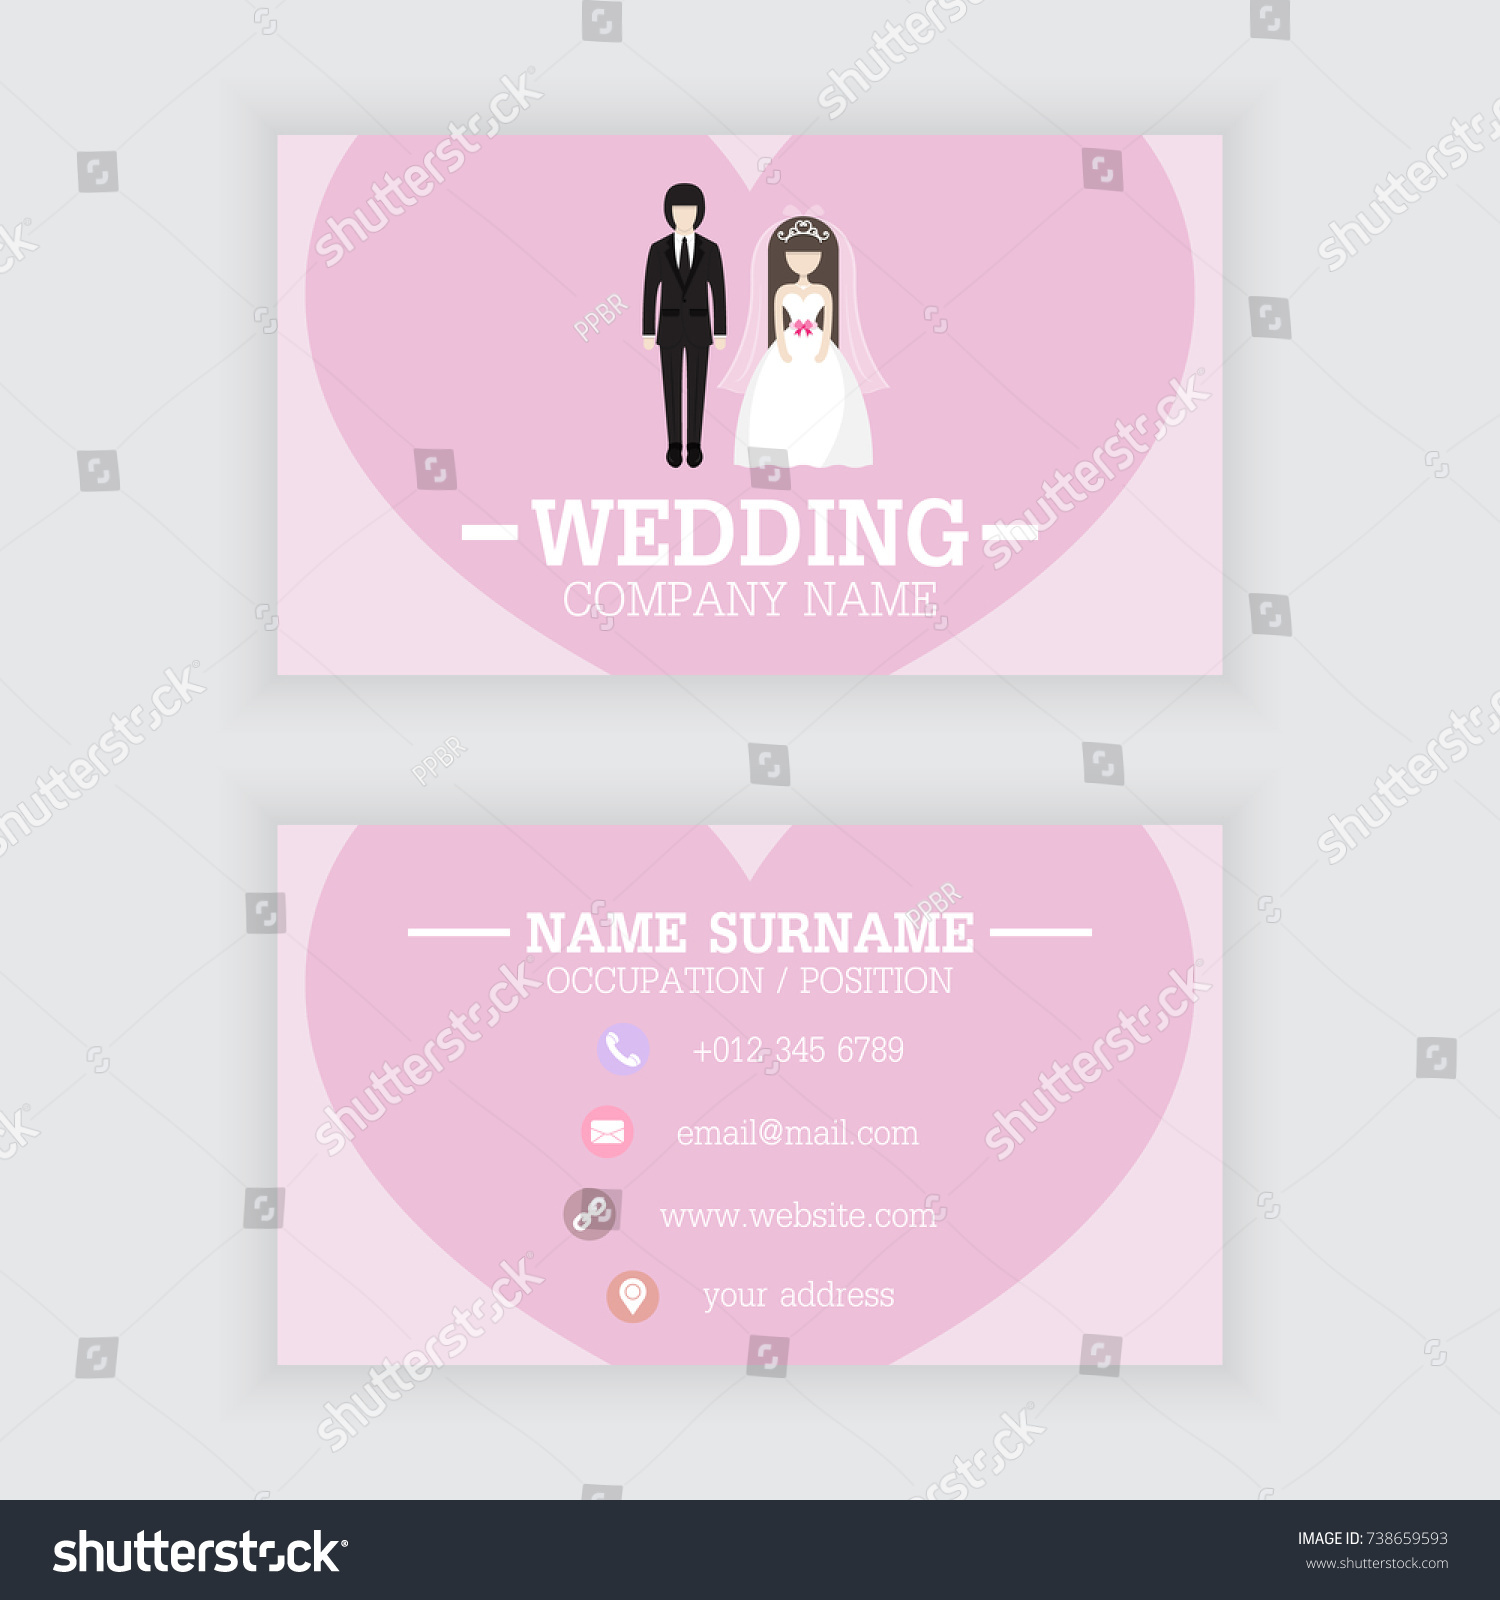 Vector Design Wedding Business Card Template Stock Vector HD ...